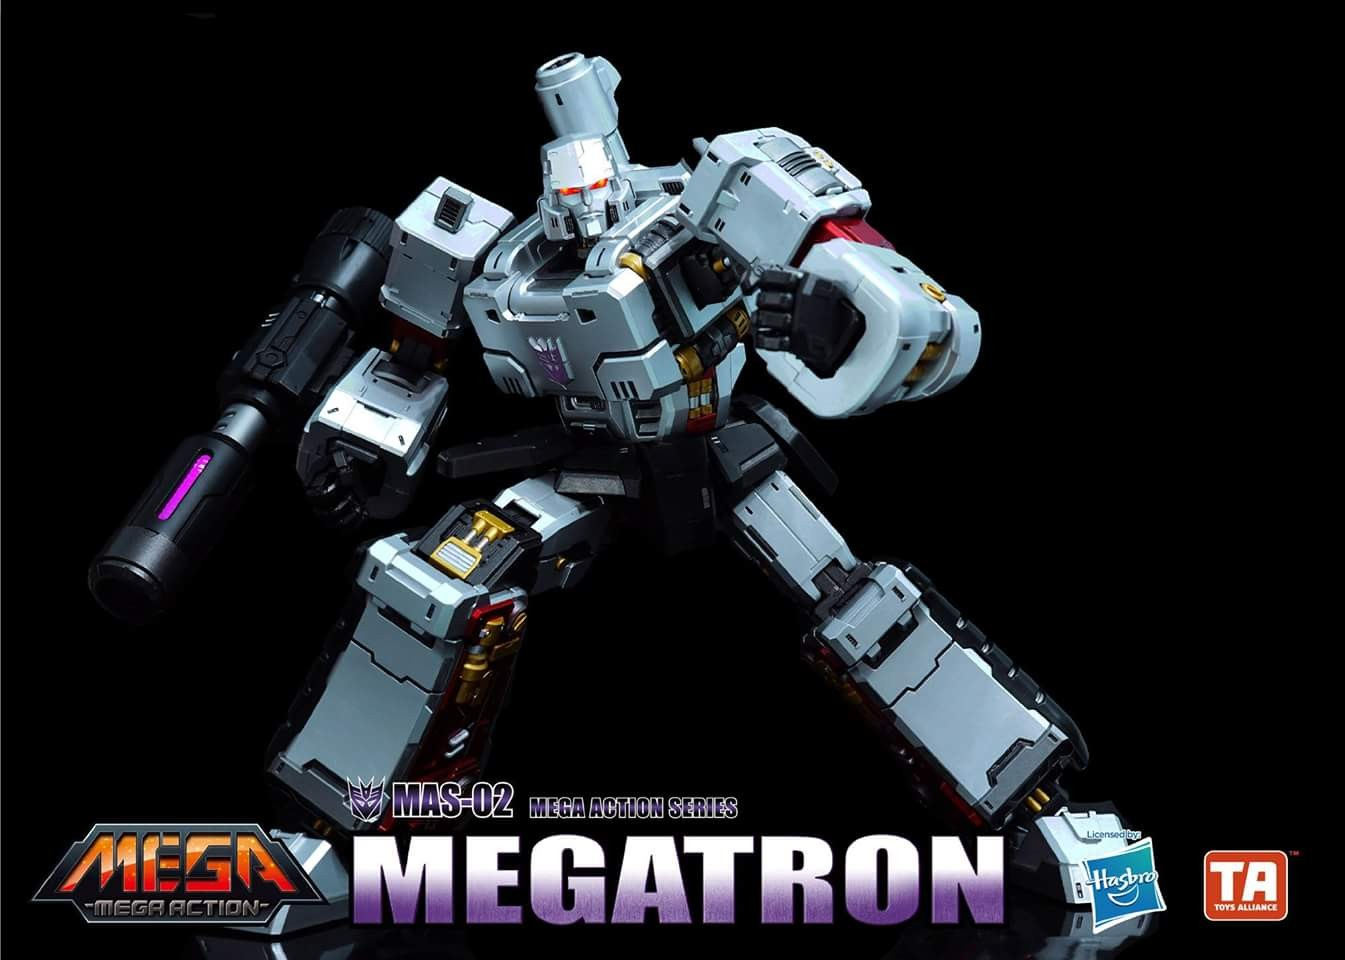 Transformers News: Re: Toys Alliance Mega Action Series Discussion Thread